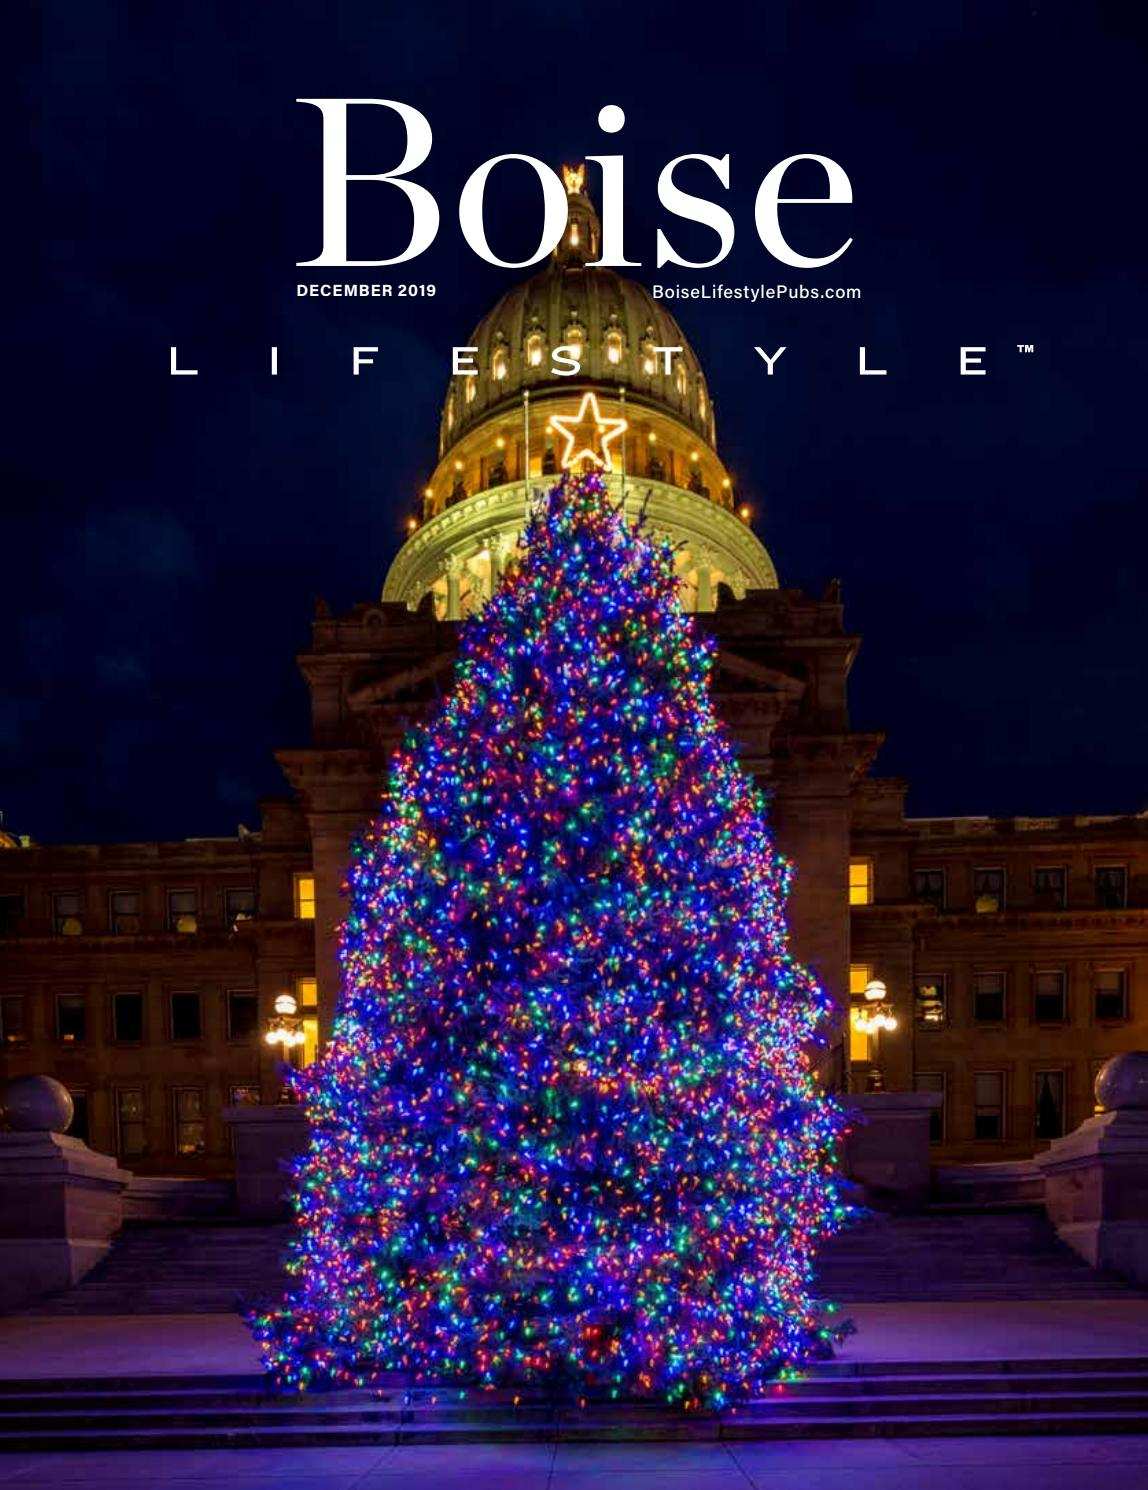 Christmas Trees At Dona Larsen Park 2020 Boise Boise, ID December 2019 by Lifestyle Publications   issuu